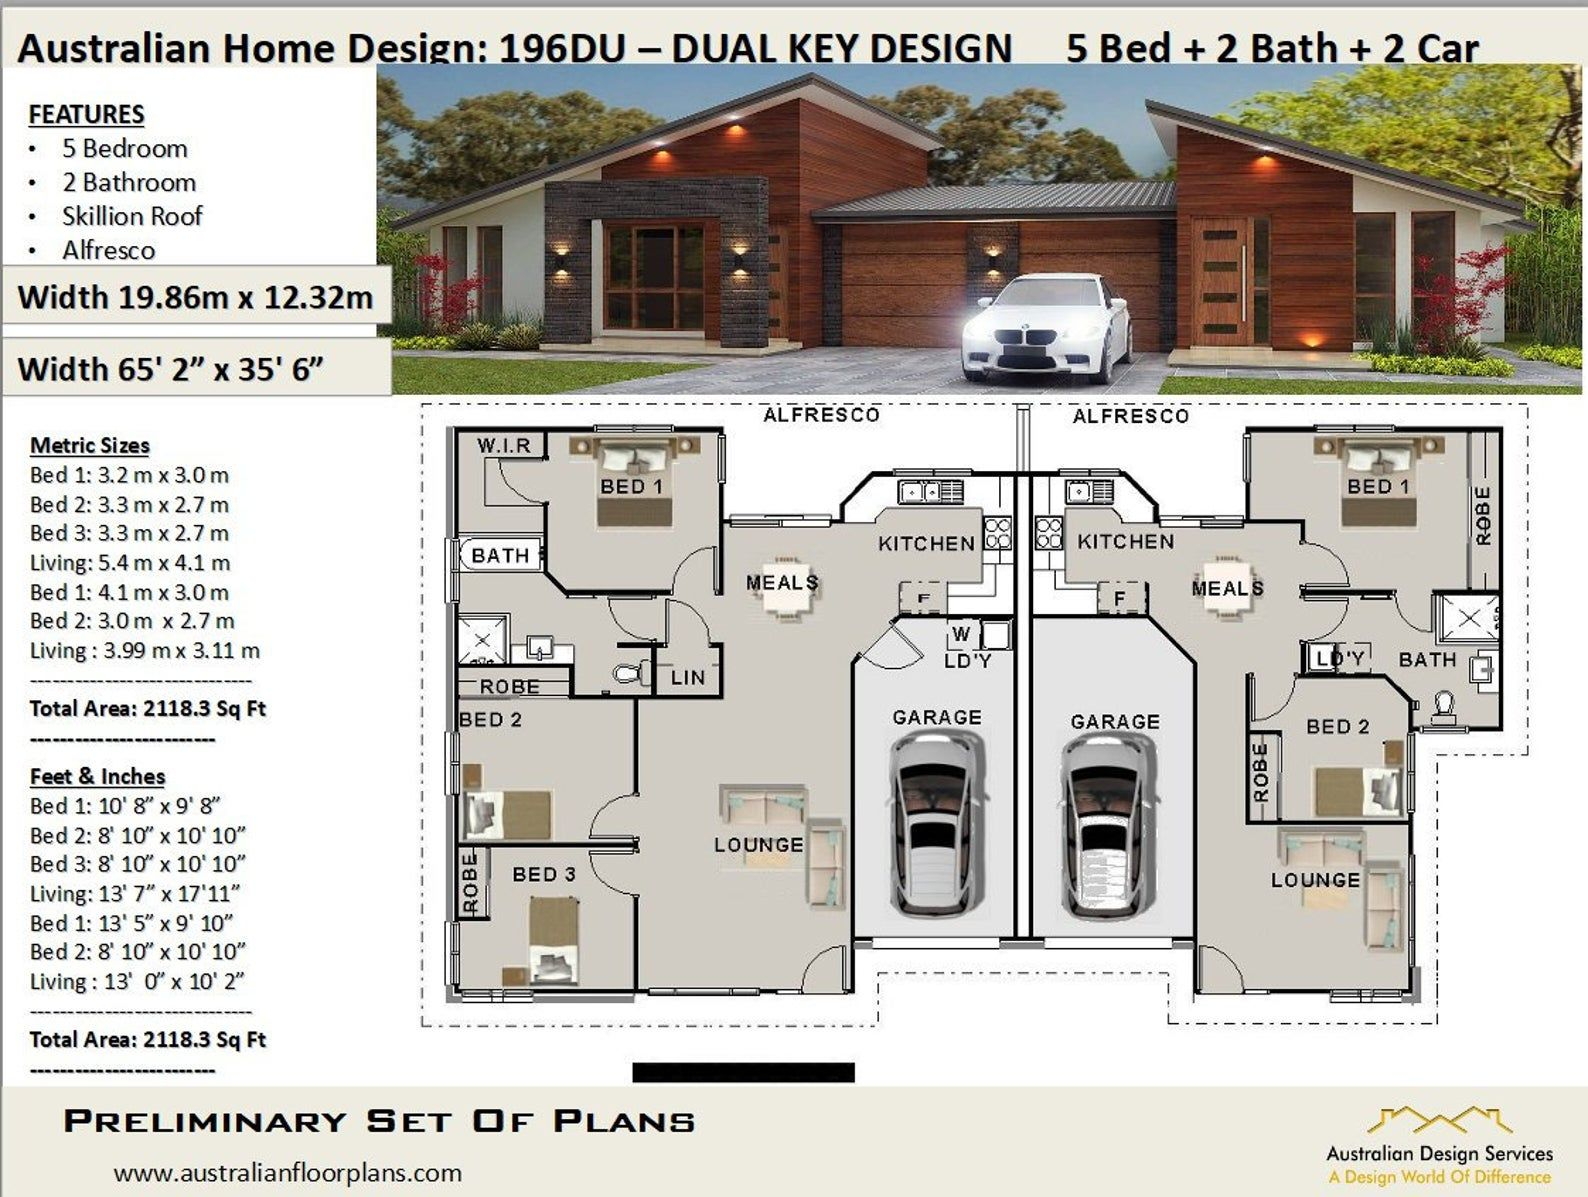 Duplex Best Selling House Plans 2 Family House Plan Etsy In 2021 Duplex Design Family House Plans Duplex Floor Plans